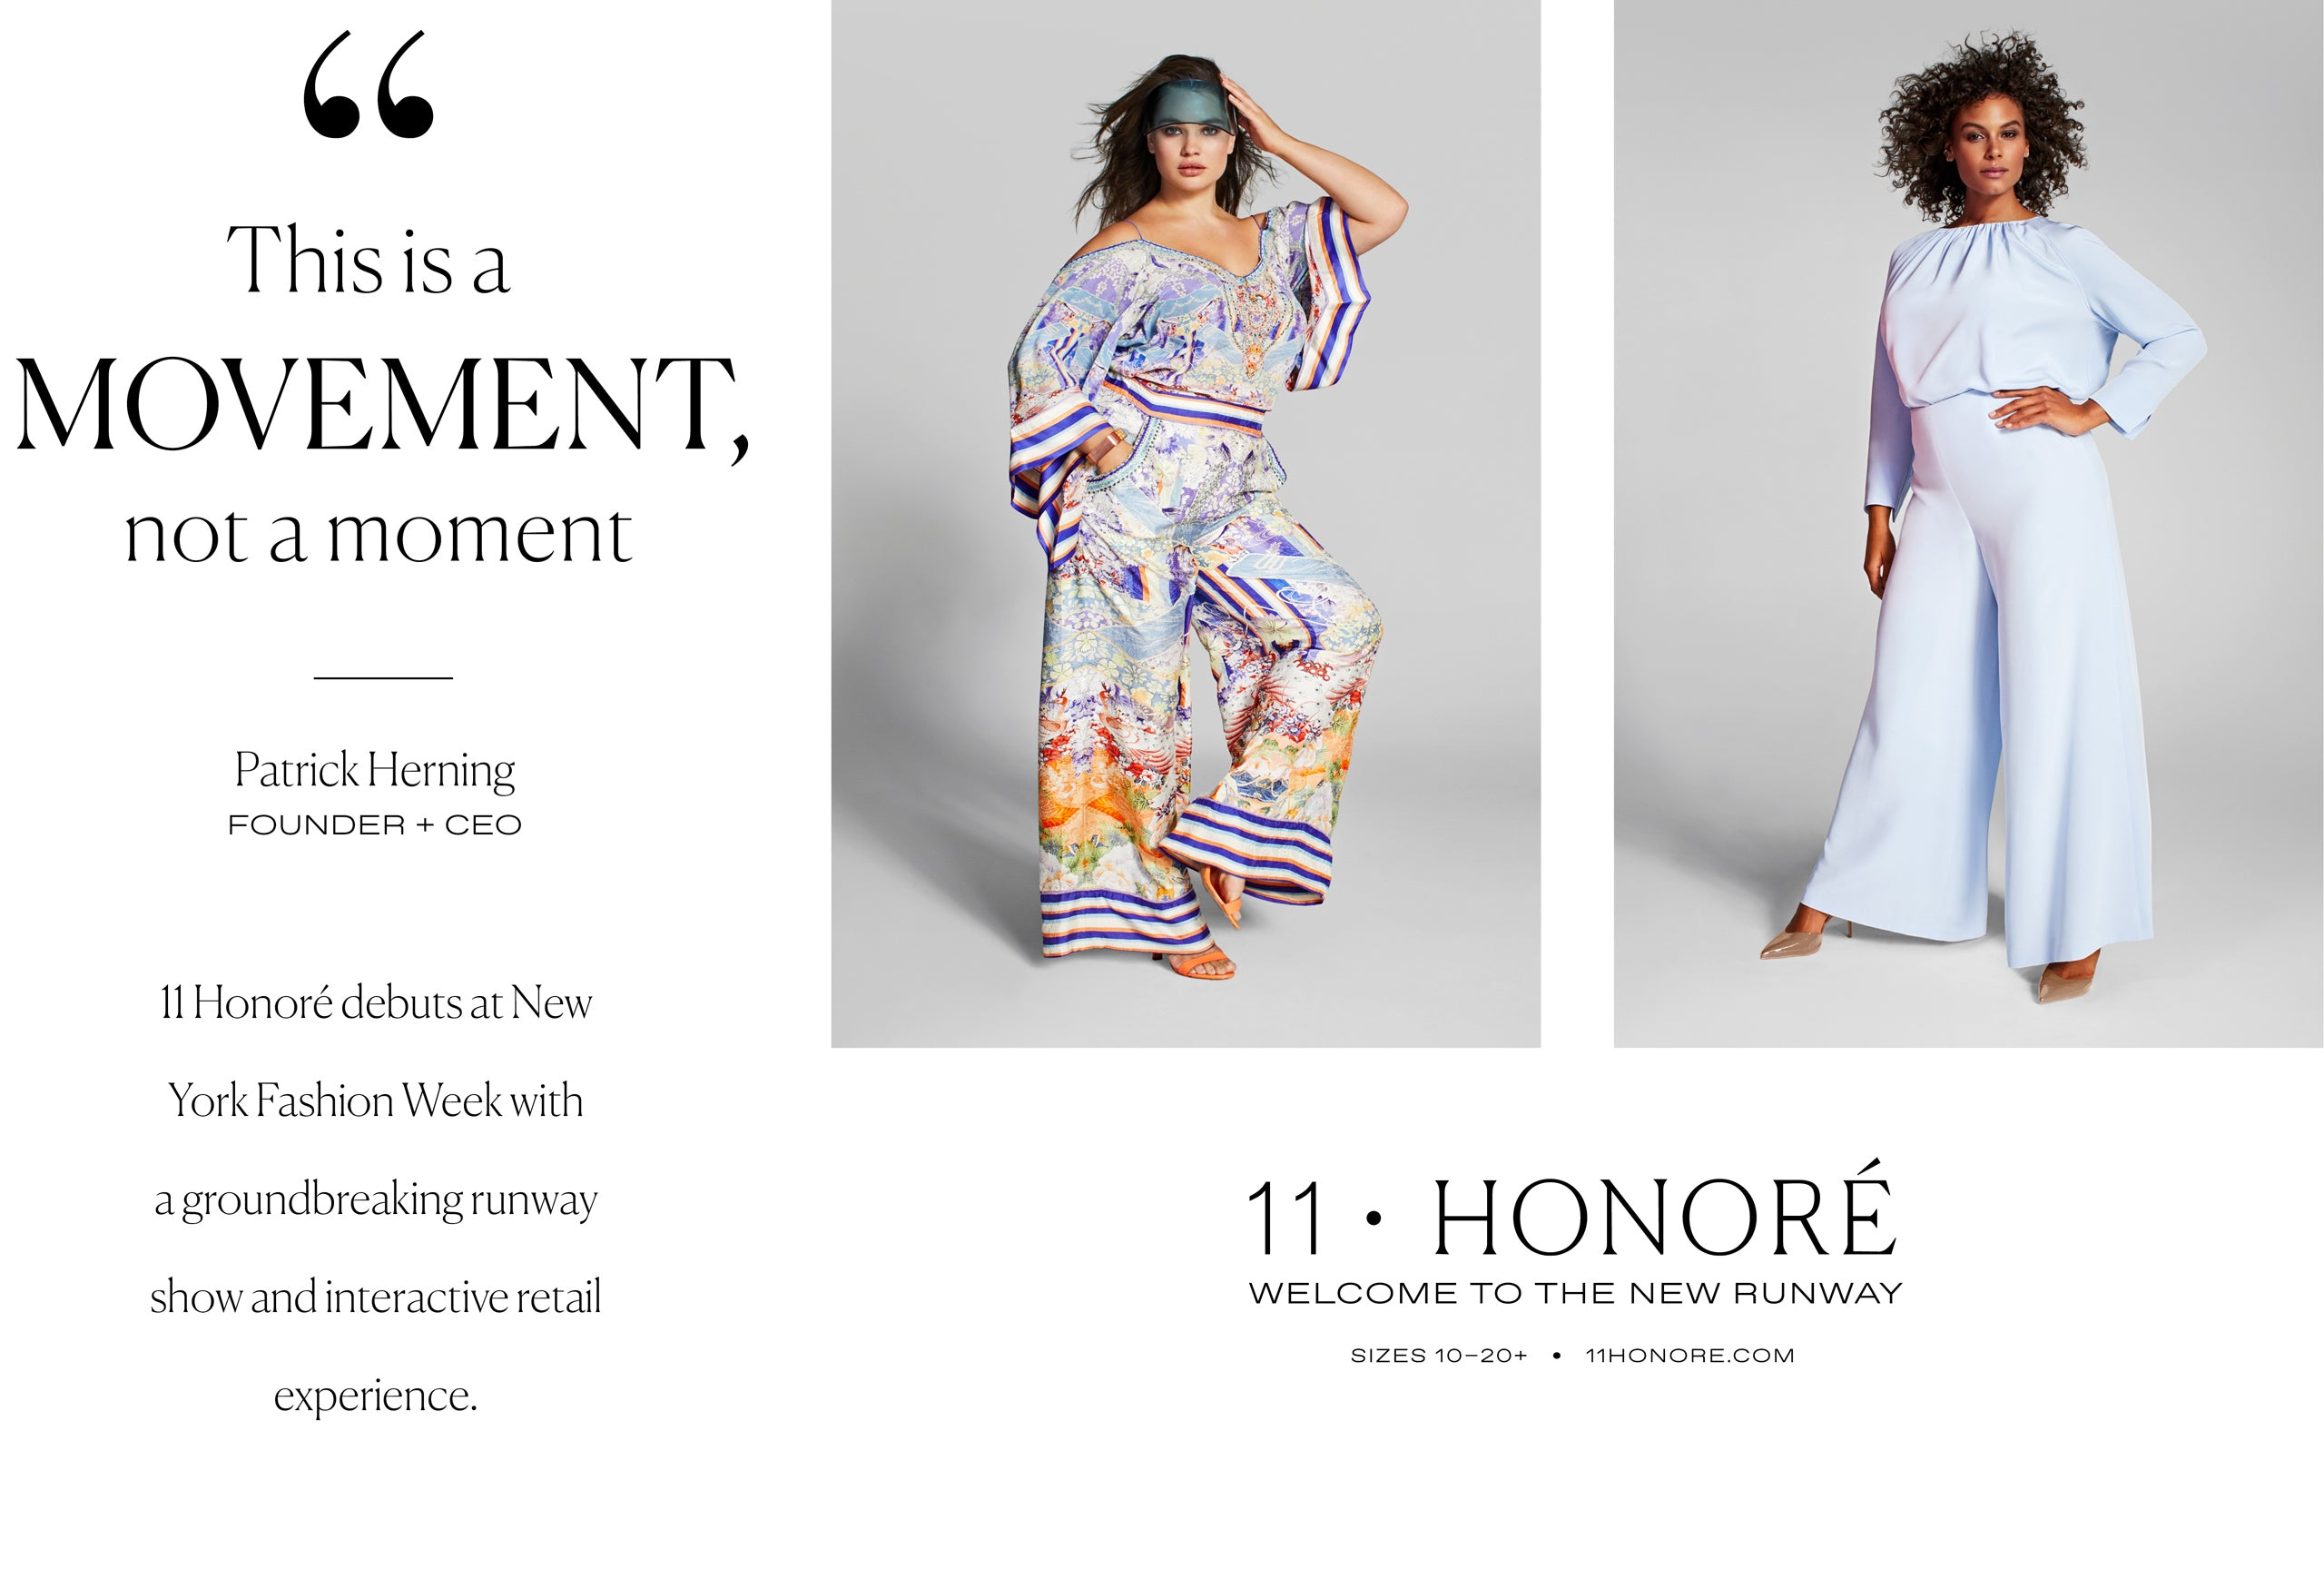 This is a movement, not a moment. 11 Honore debuts at New York Fashion Week with a groundbreaking runway show and interactive retail experience.